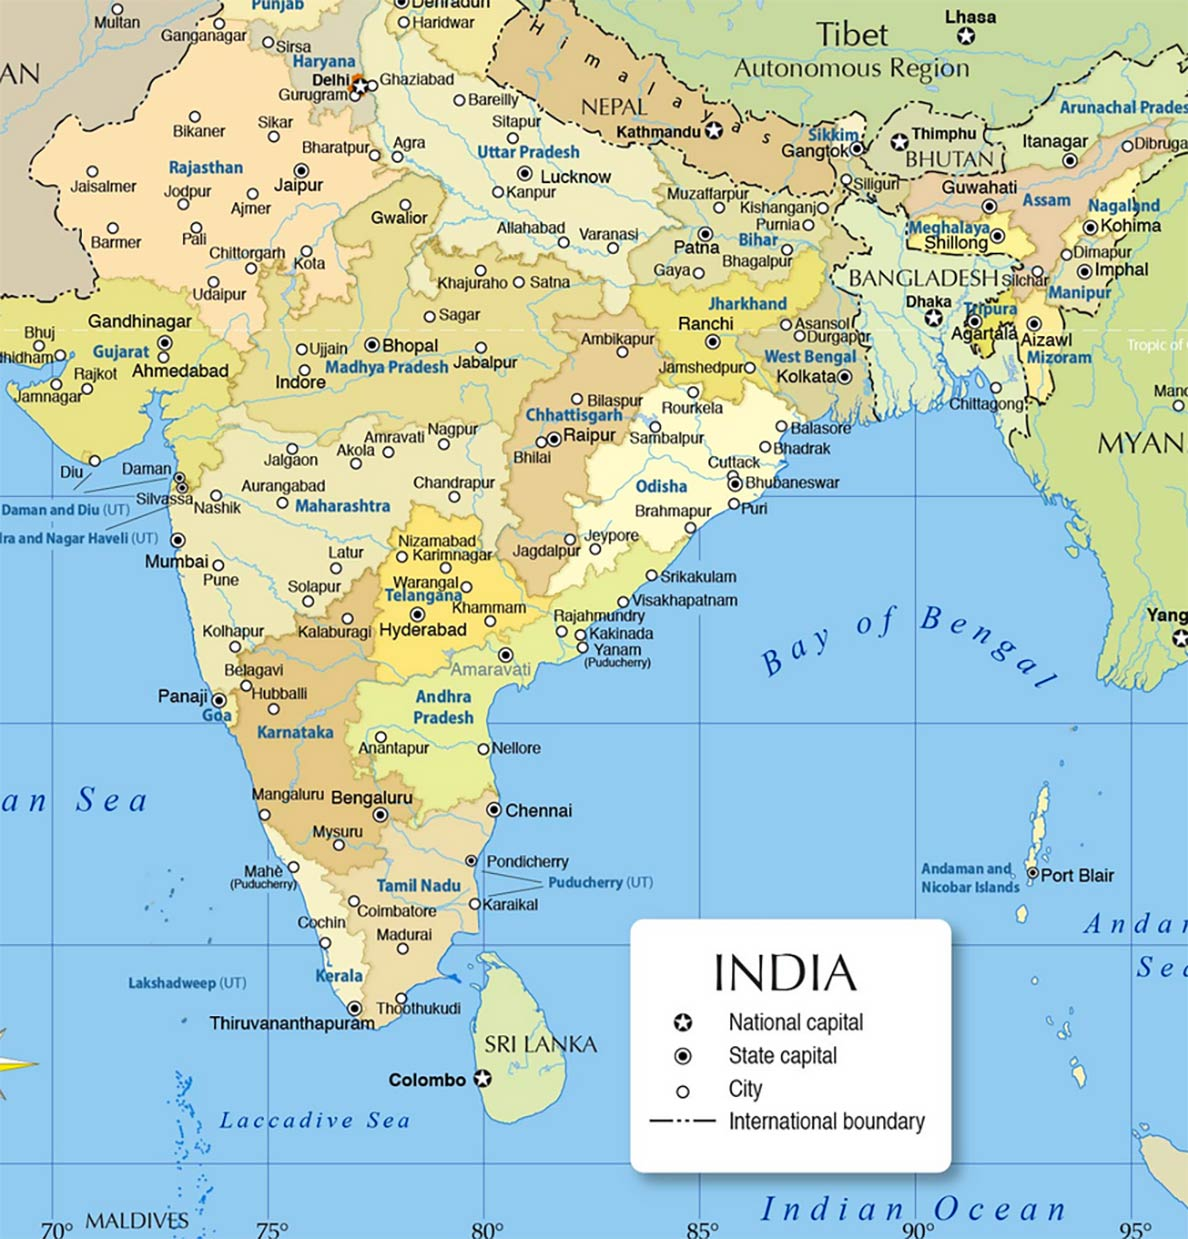 India - Country Profile - Nations Online Project